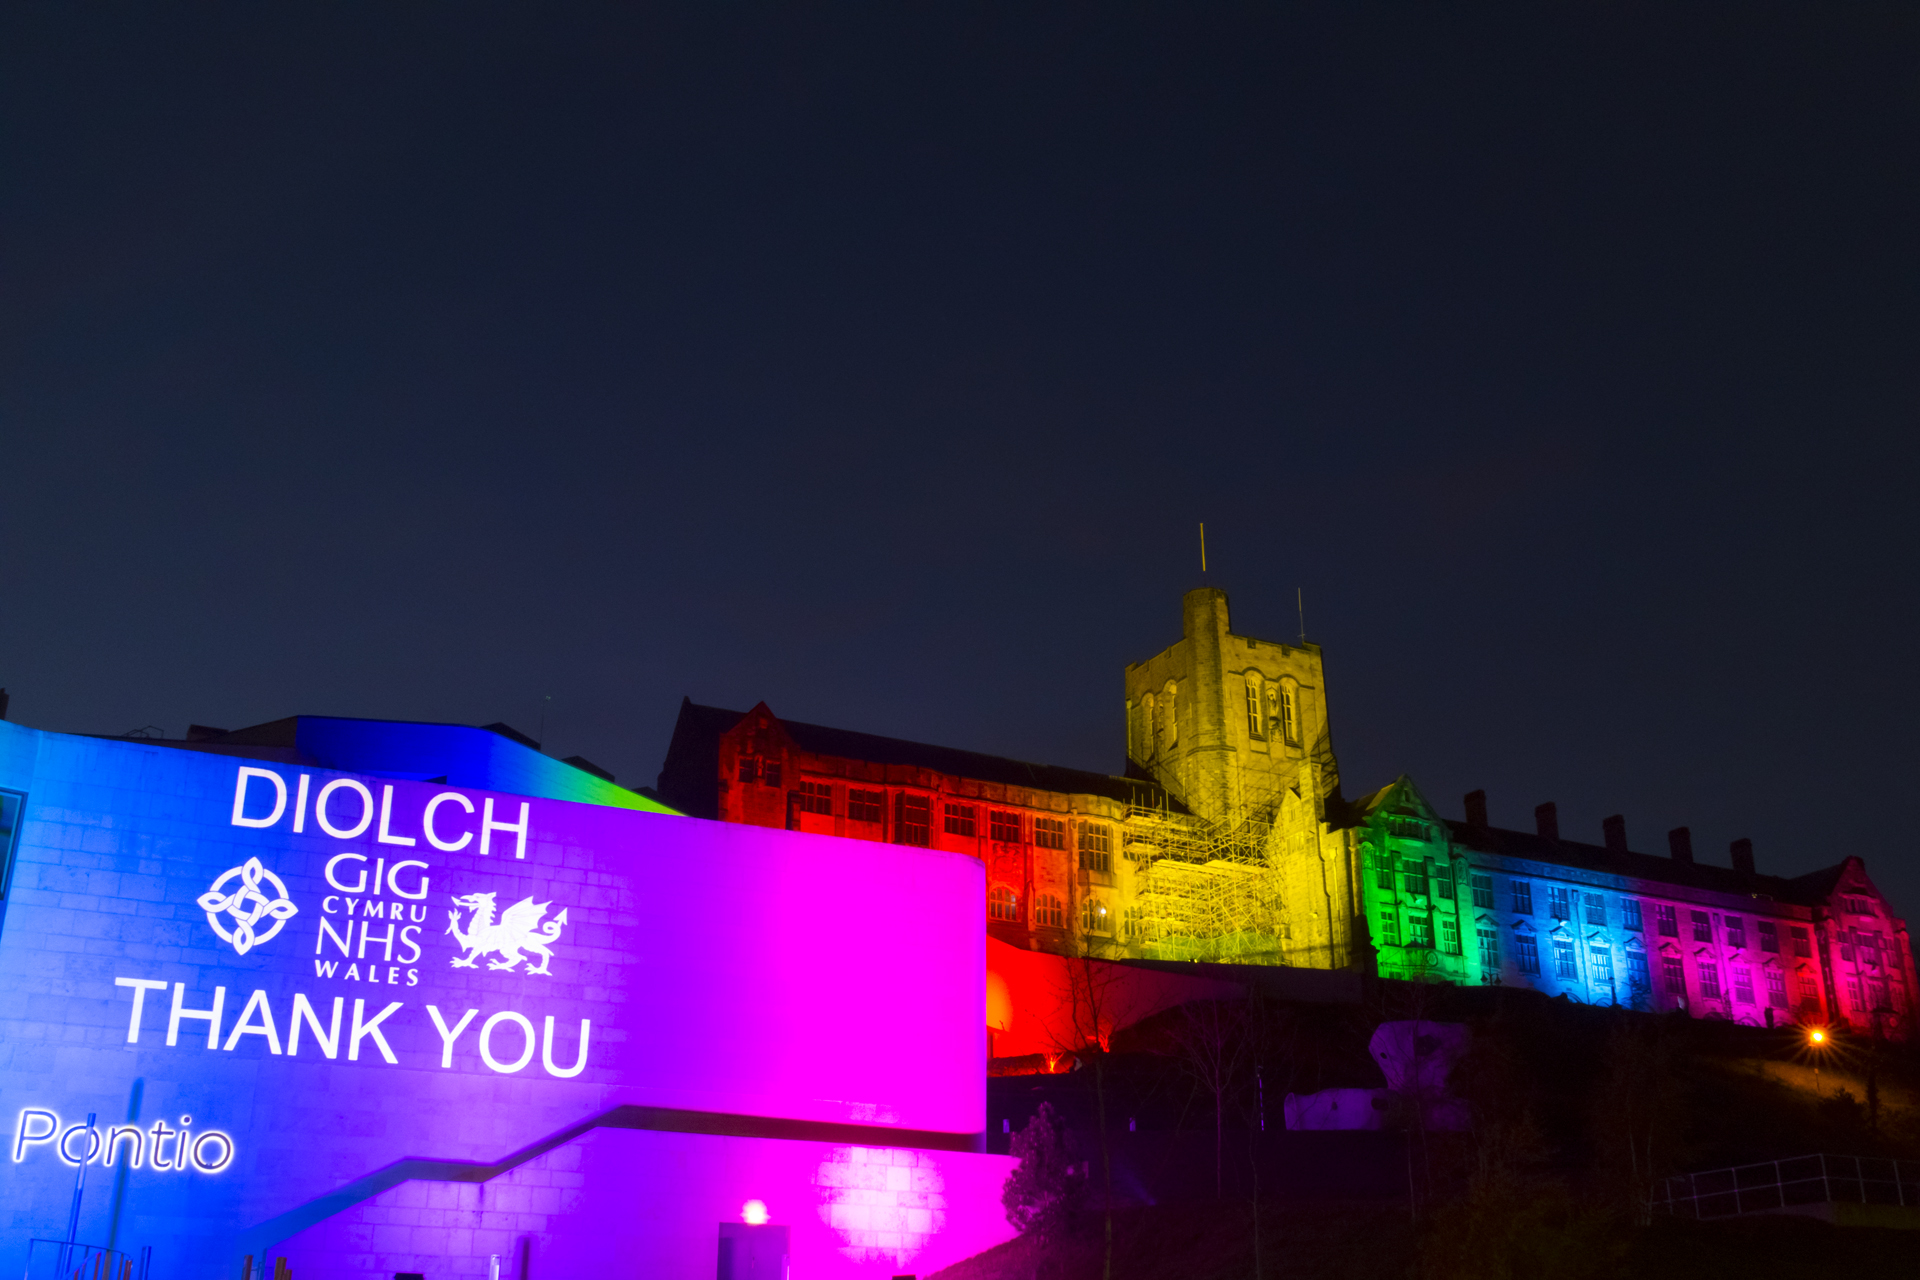 Outdoor rainbow lighting and projection at Pontio Theatre & Bangor university - thank you to NHS